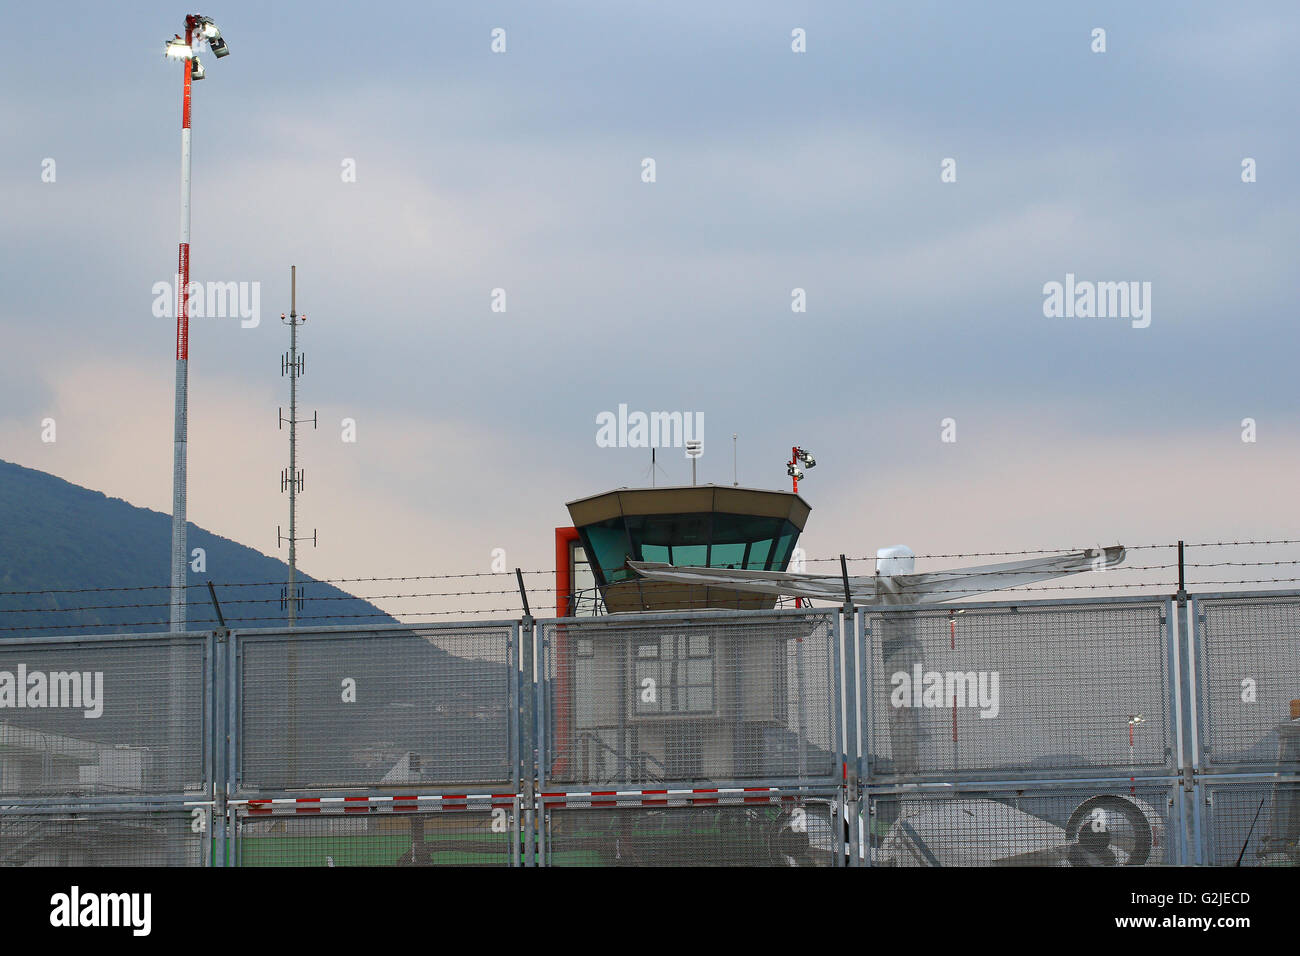 Chain link fence and barb wire around the control tower and business jet at a small international airport at dusk - Stock Image